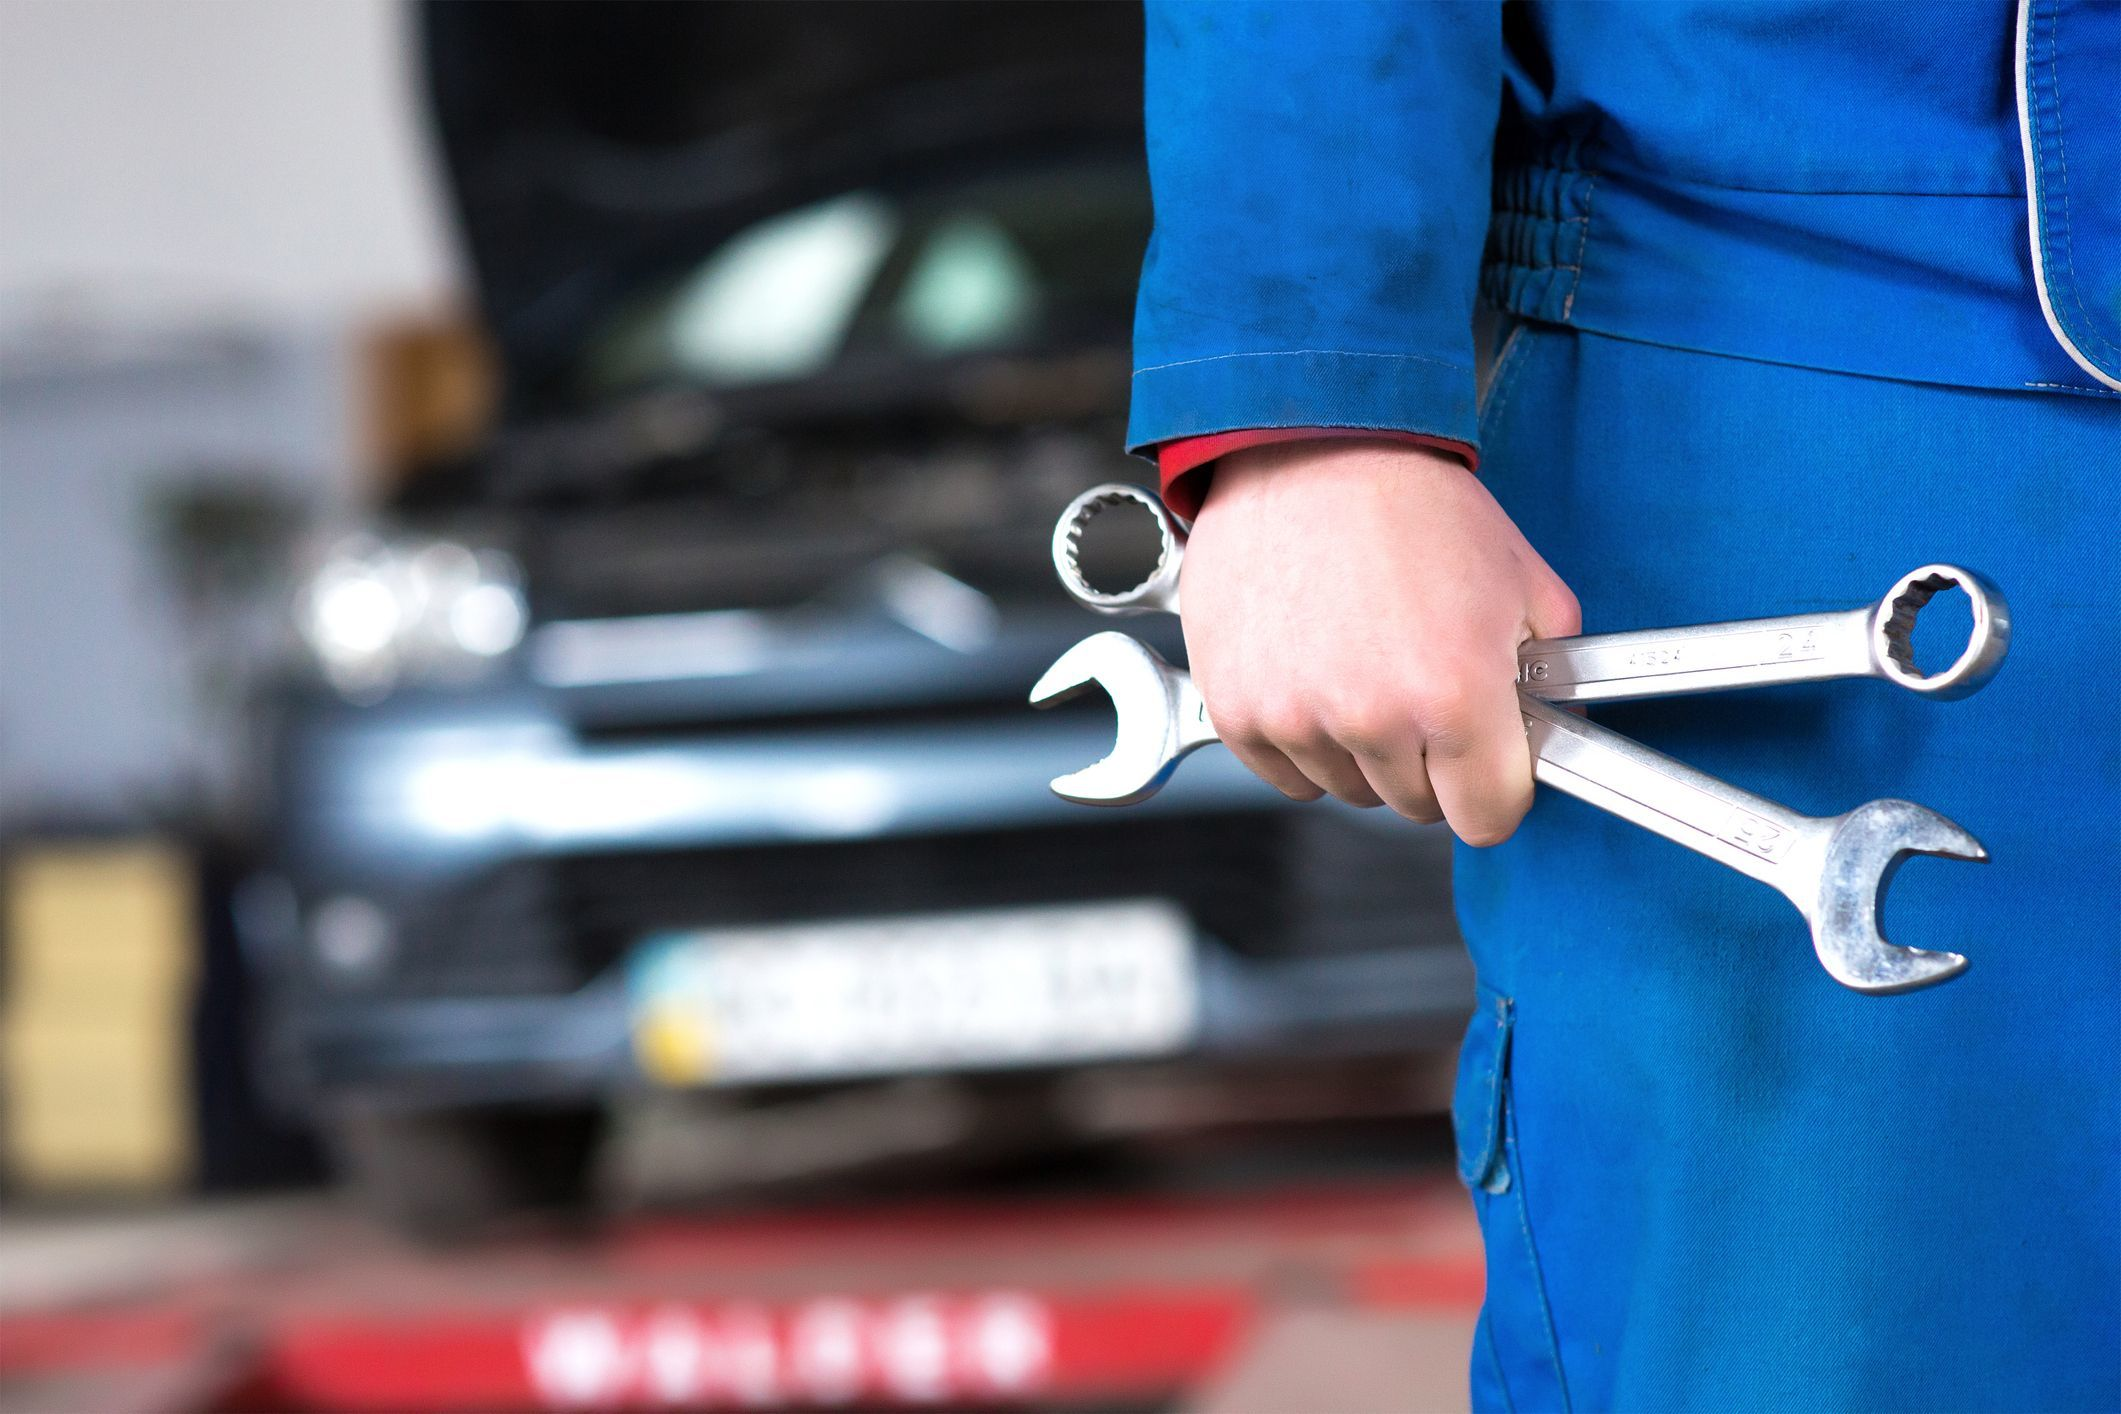 J.D. Power 2019 Customer Service Index study found completing repairs right the first time is done 94 percent of the time on average, but washing the customer's car is only done 45 percentof the time.